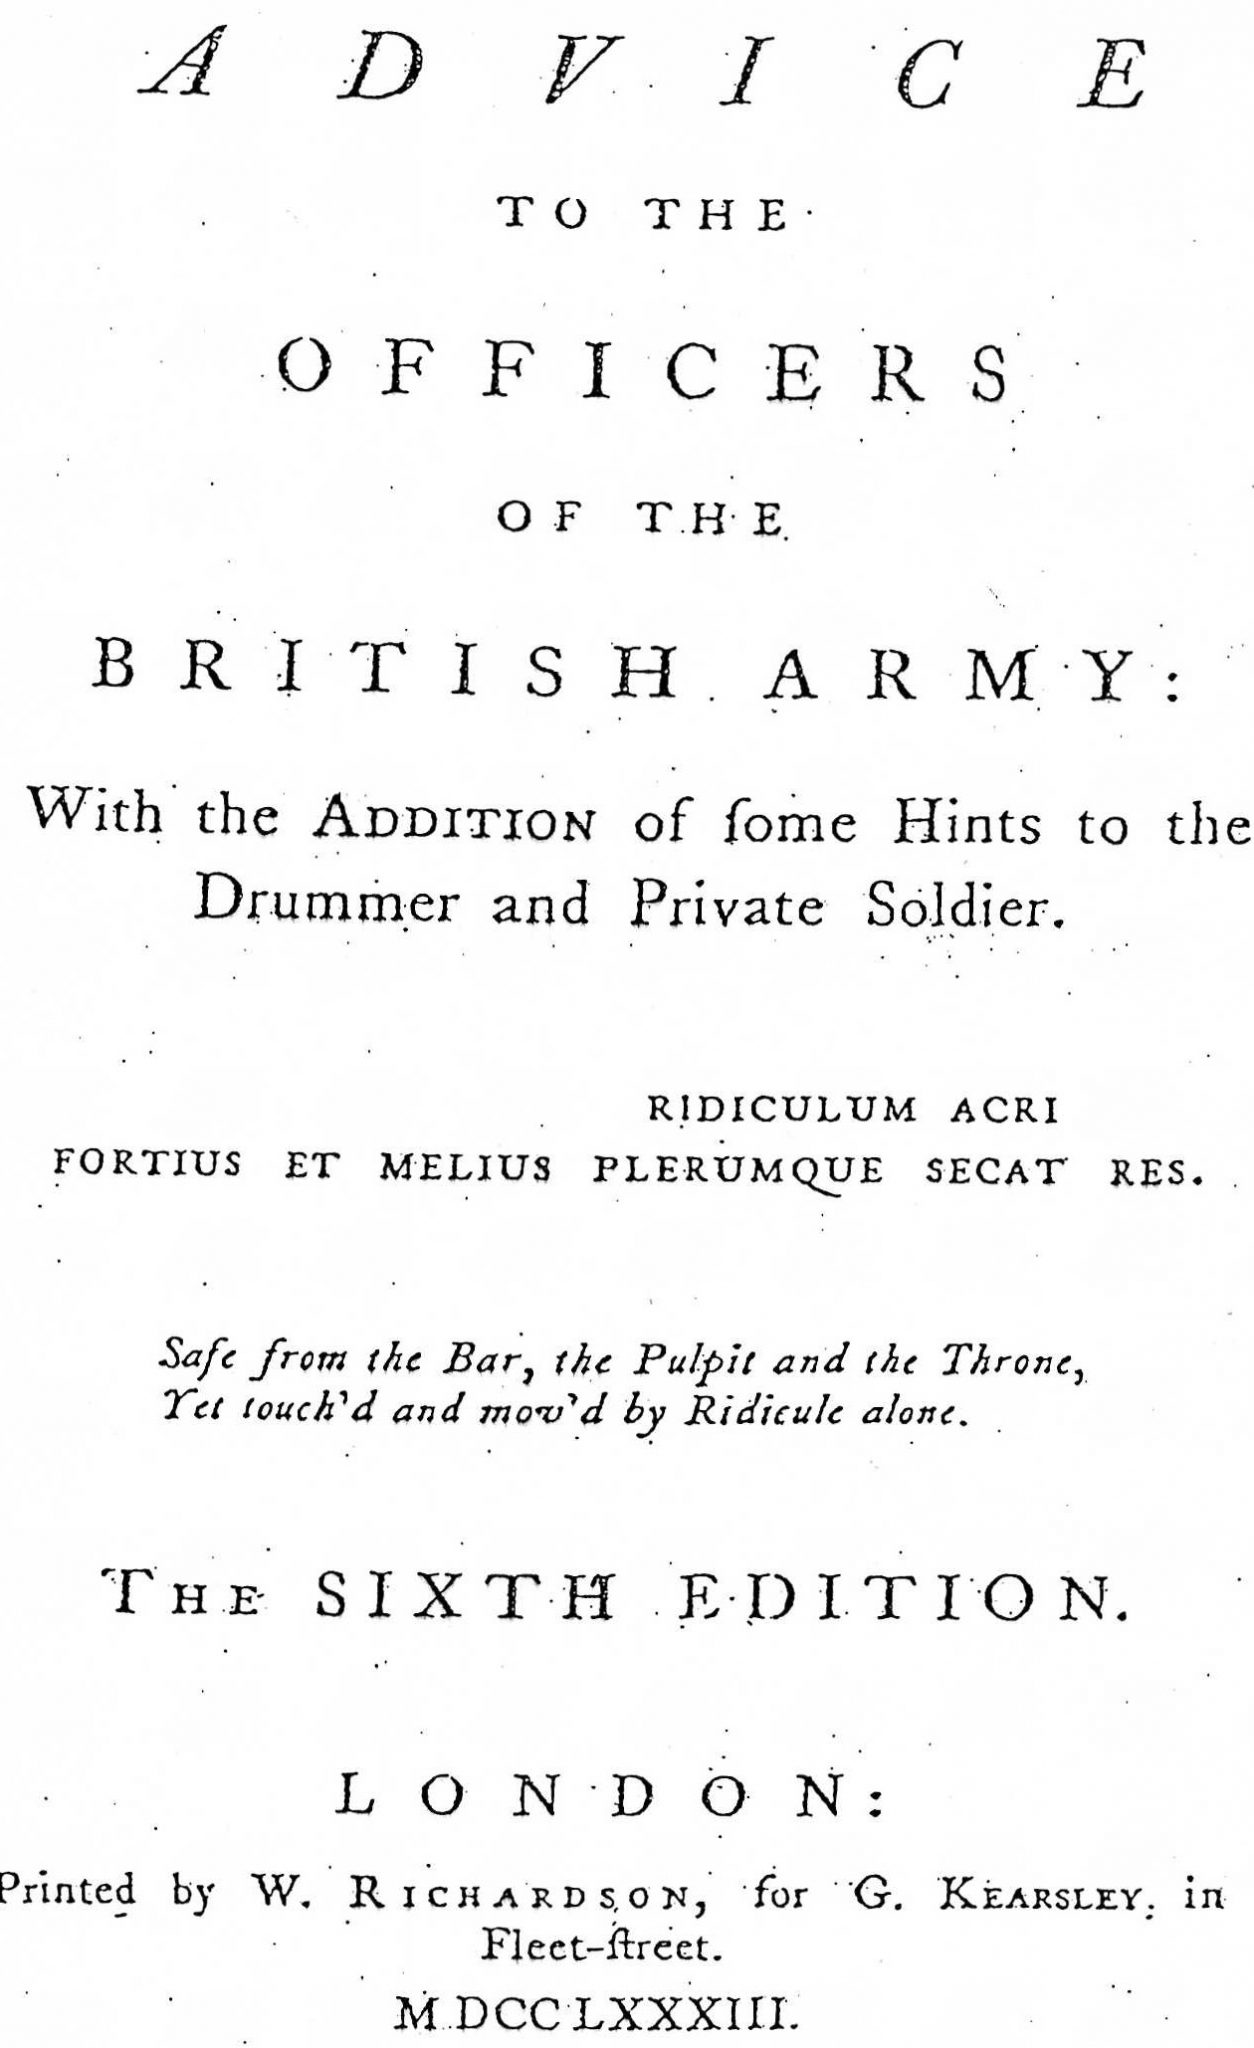 Advice to the Officers of the British Army: With the addition of Some Hints to the Drummer and Private Soldier London, 1783